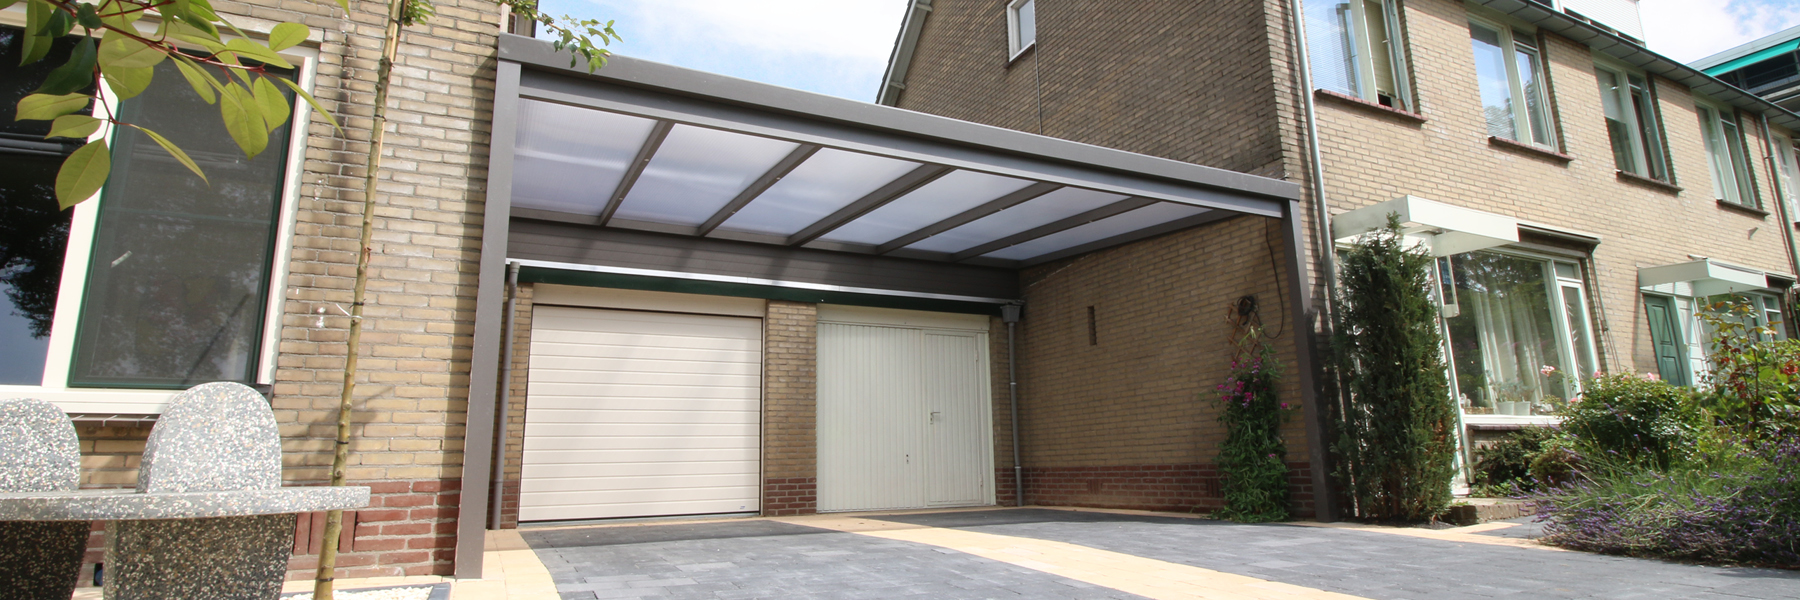 tdm-sliders-carports-vlak